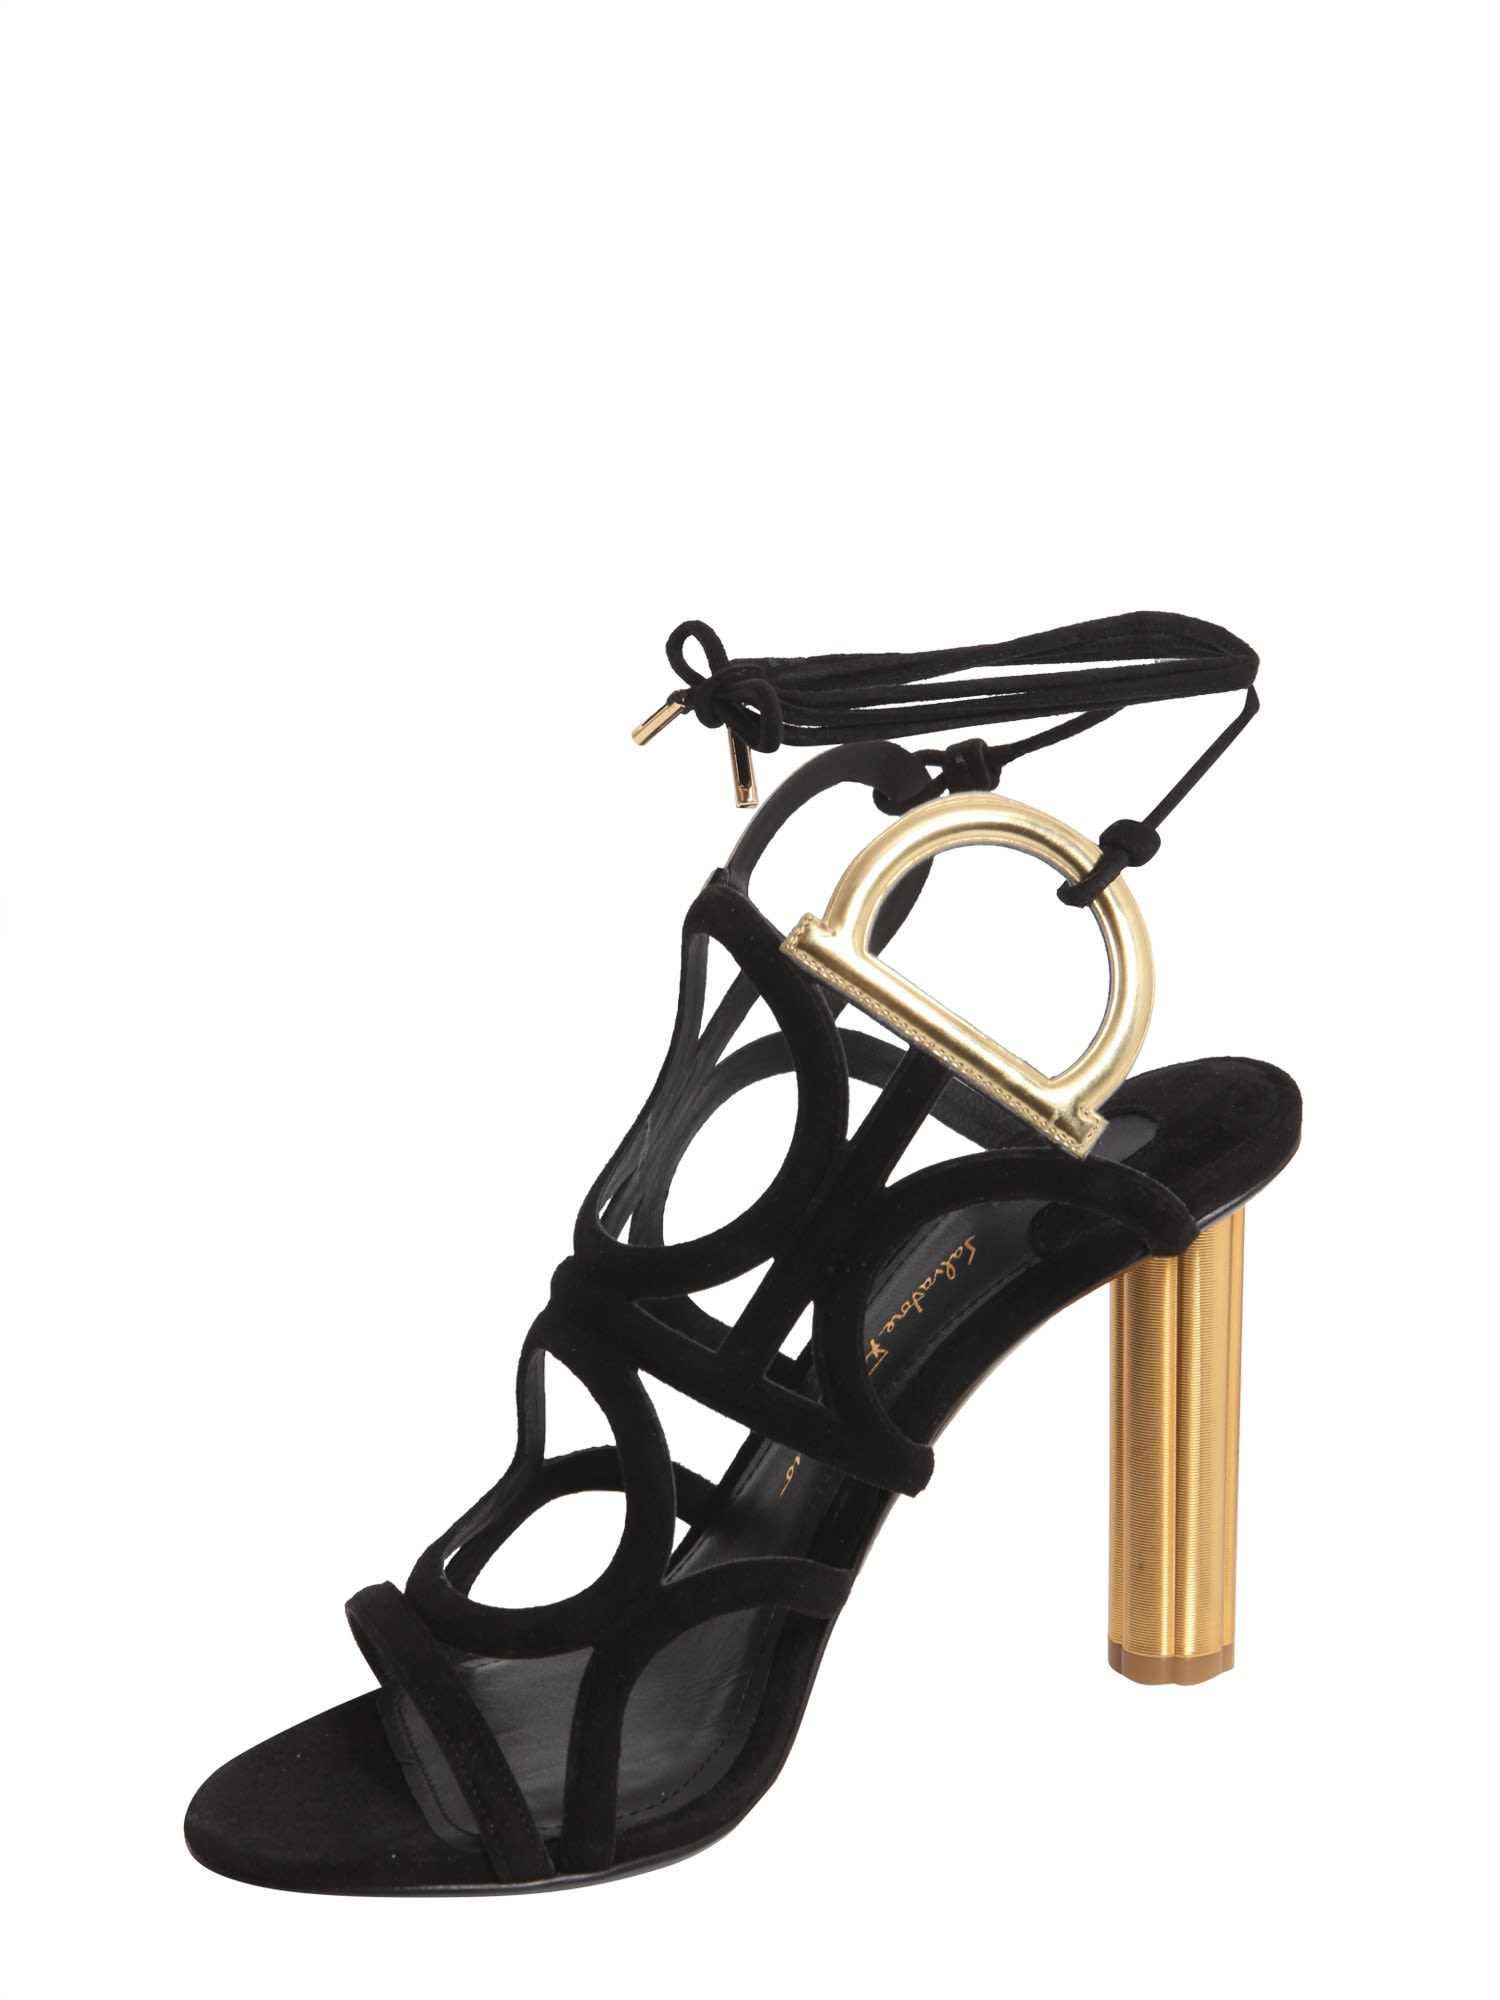 discount get to buy outlet online shop Salvatore Ferragamo Gancini sandals cheap websites pre order online free shipping visit cORfaK